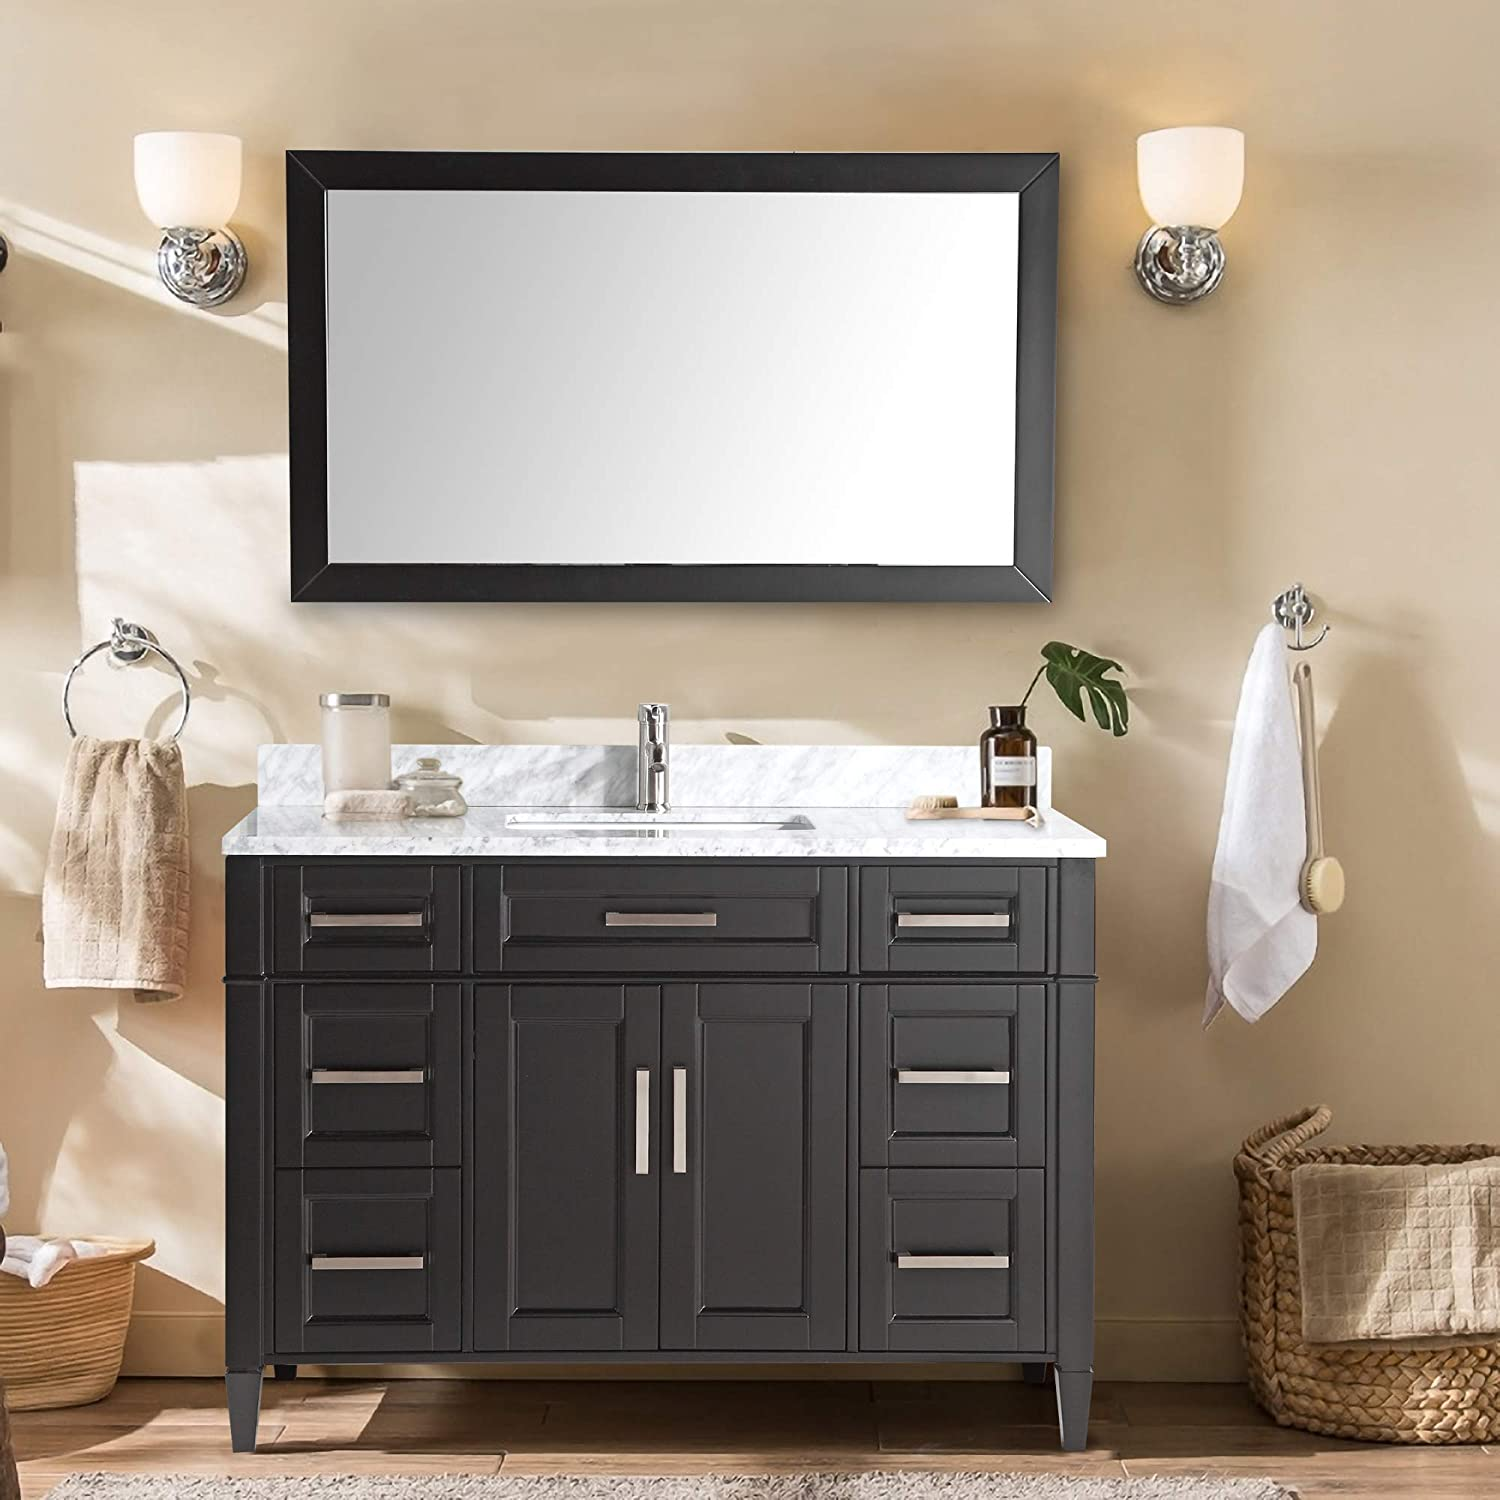 Vanity Art 60 Inch Single Sink Bathroom Vanity Set Carrara Marble Stone Soft Closing Doors Undermount Rectangle Sink with Free Mirror – VA2060-E